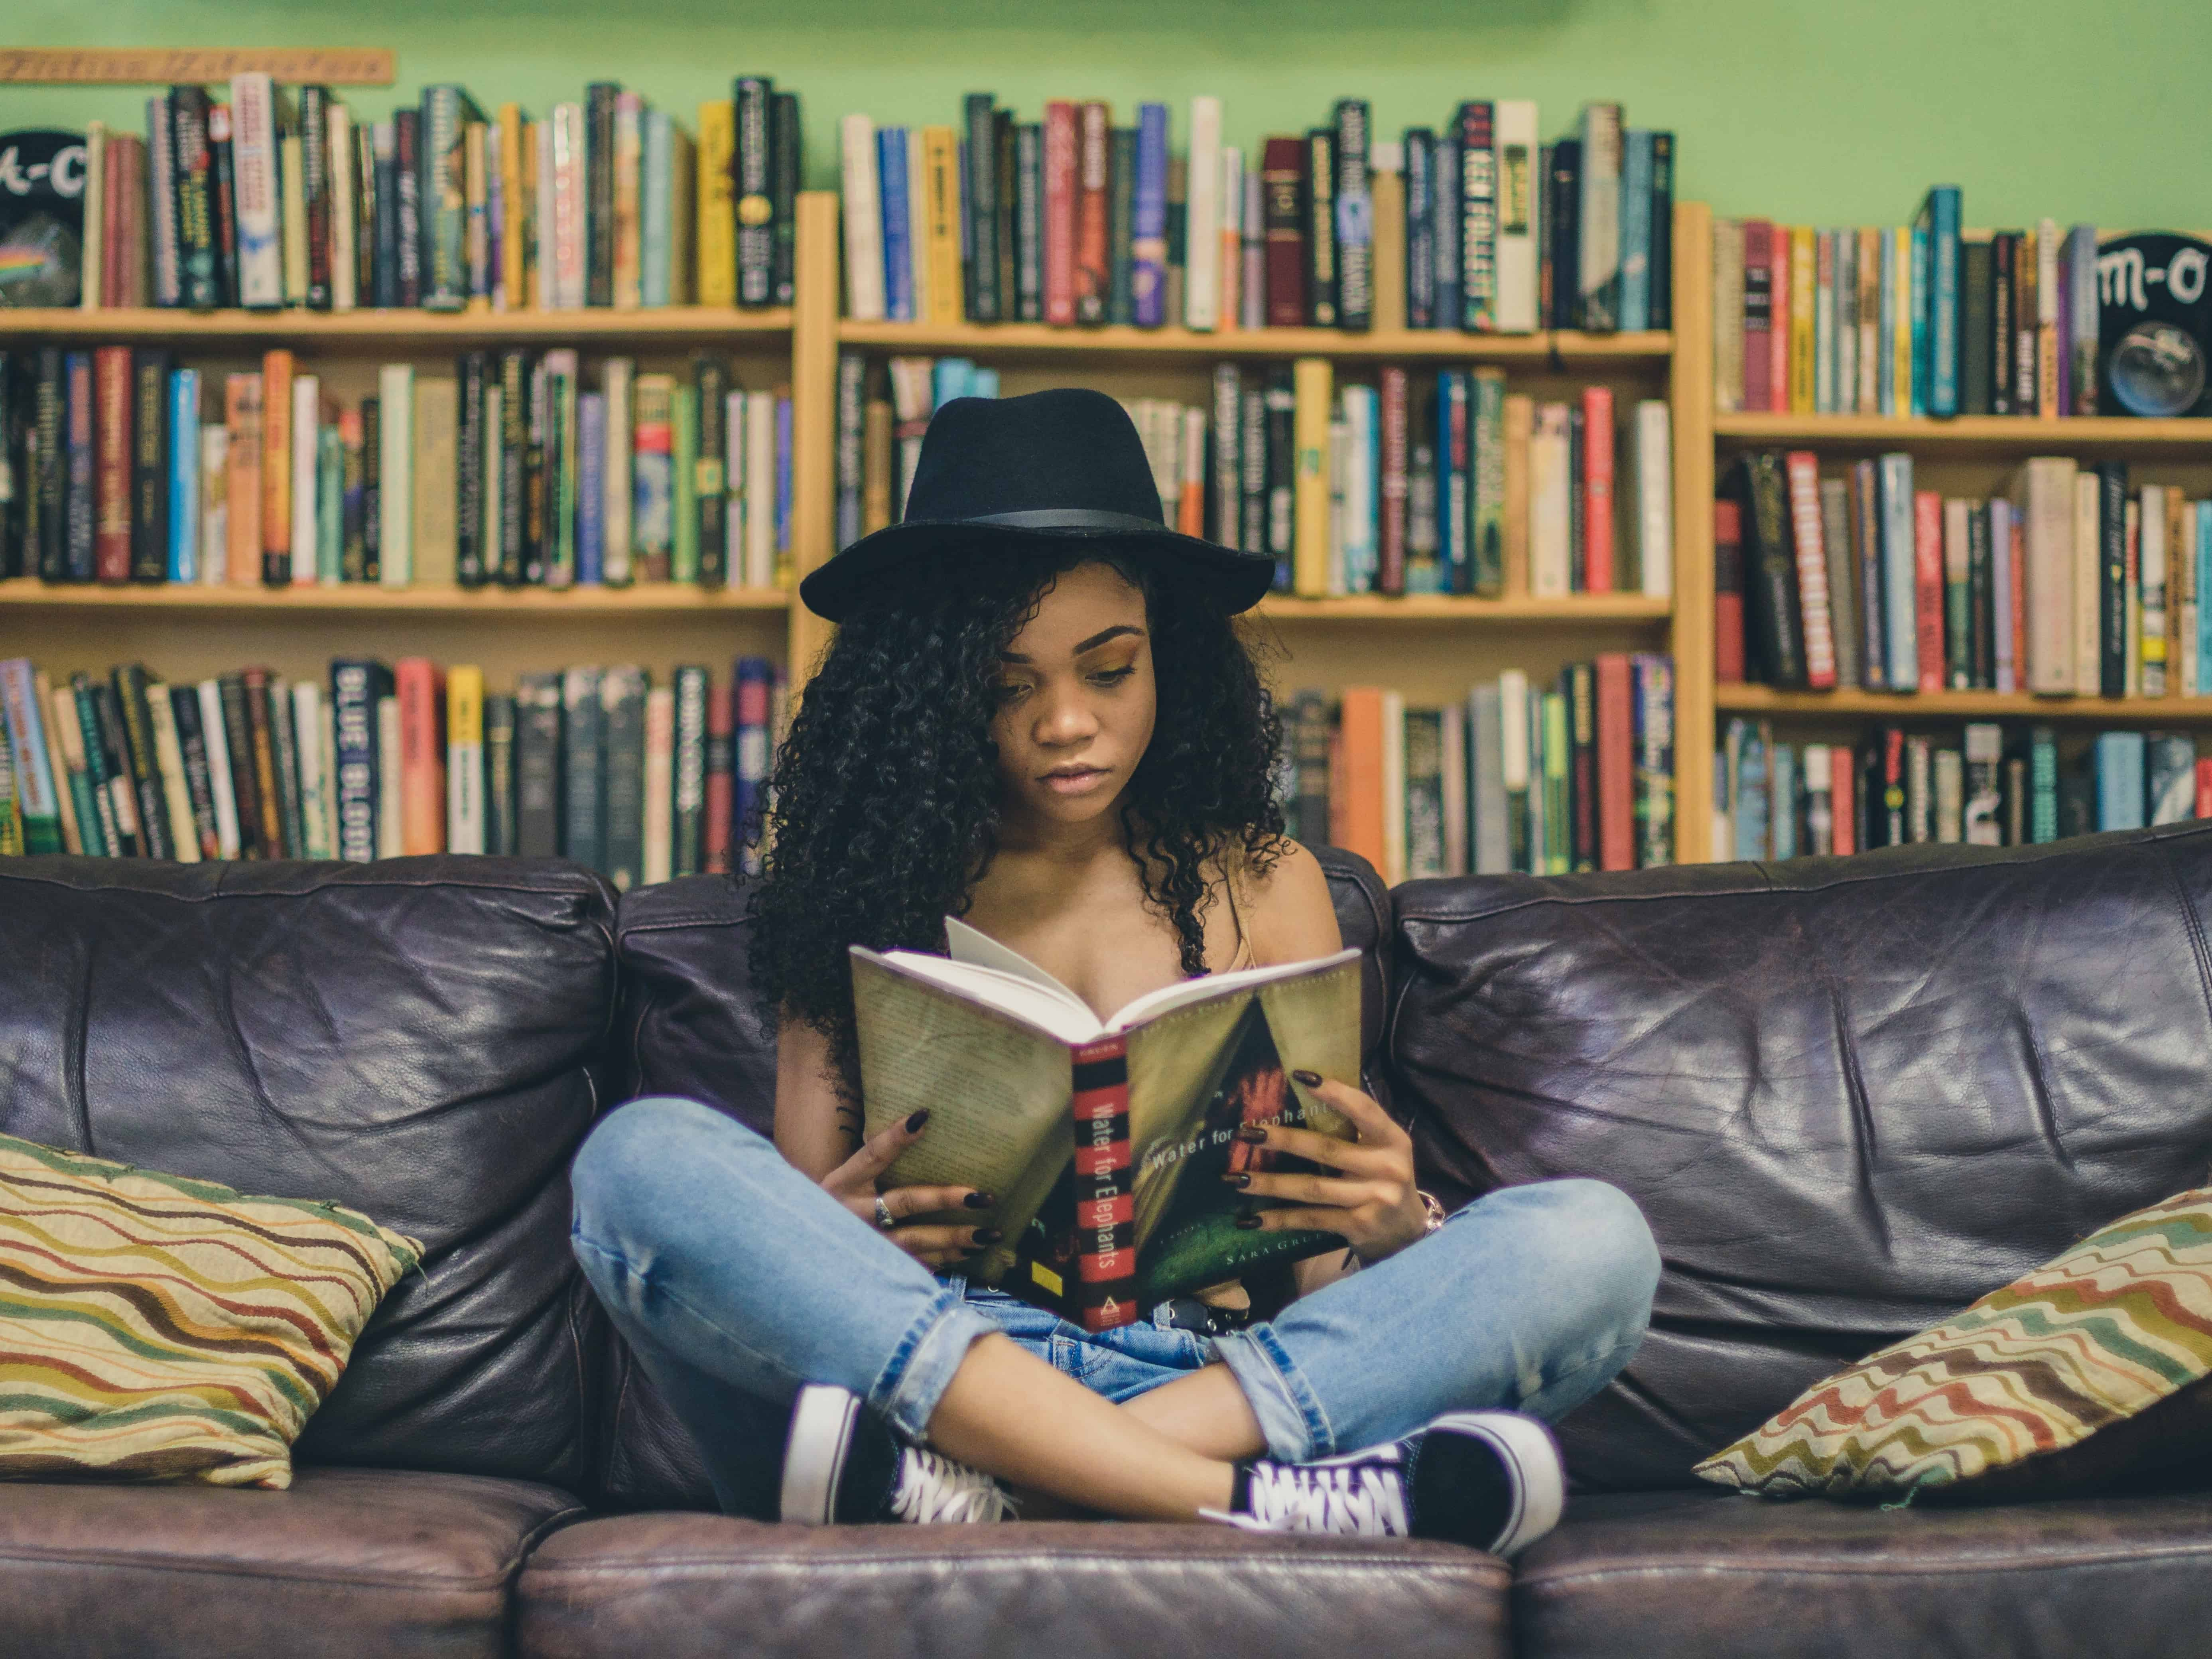 15 Signs You Love Books As Much As Breathing